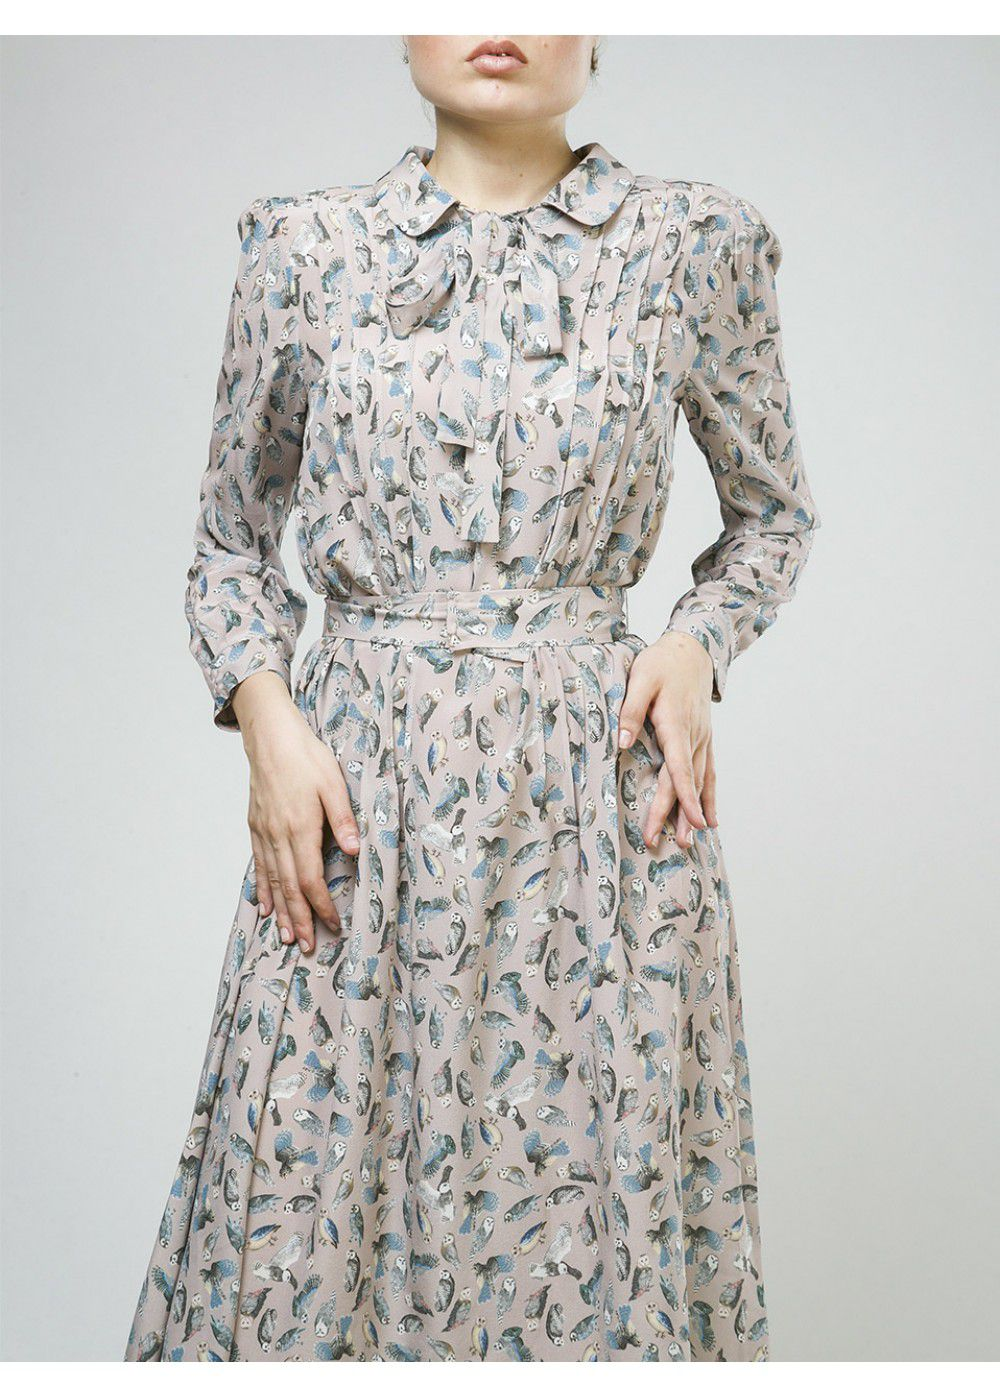 Alena Akhmadullina Own Print Dress in Pink